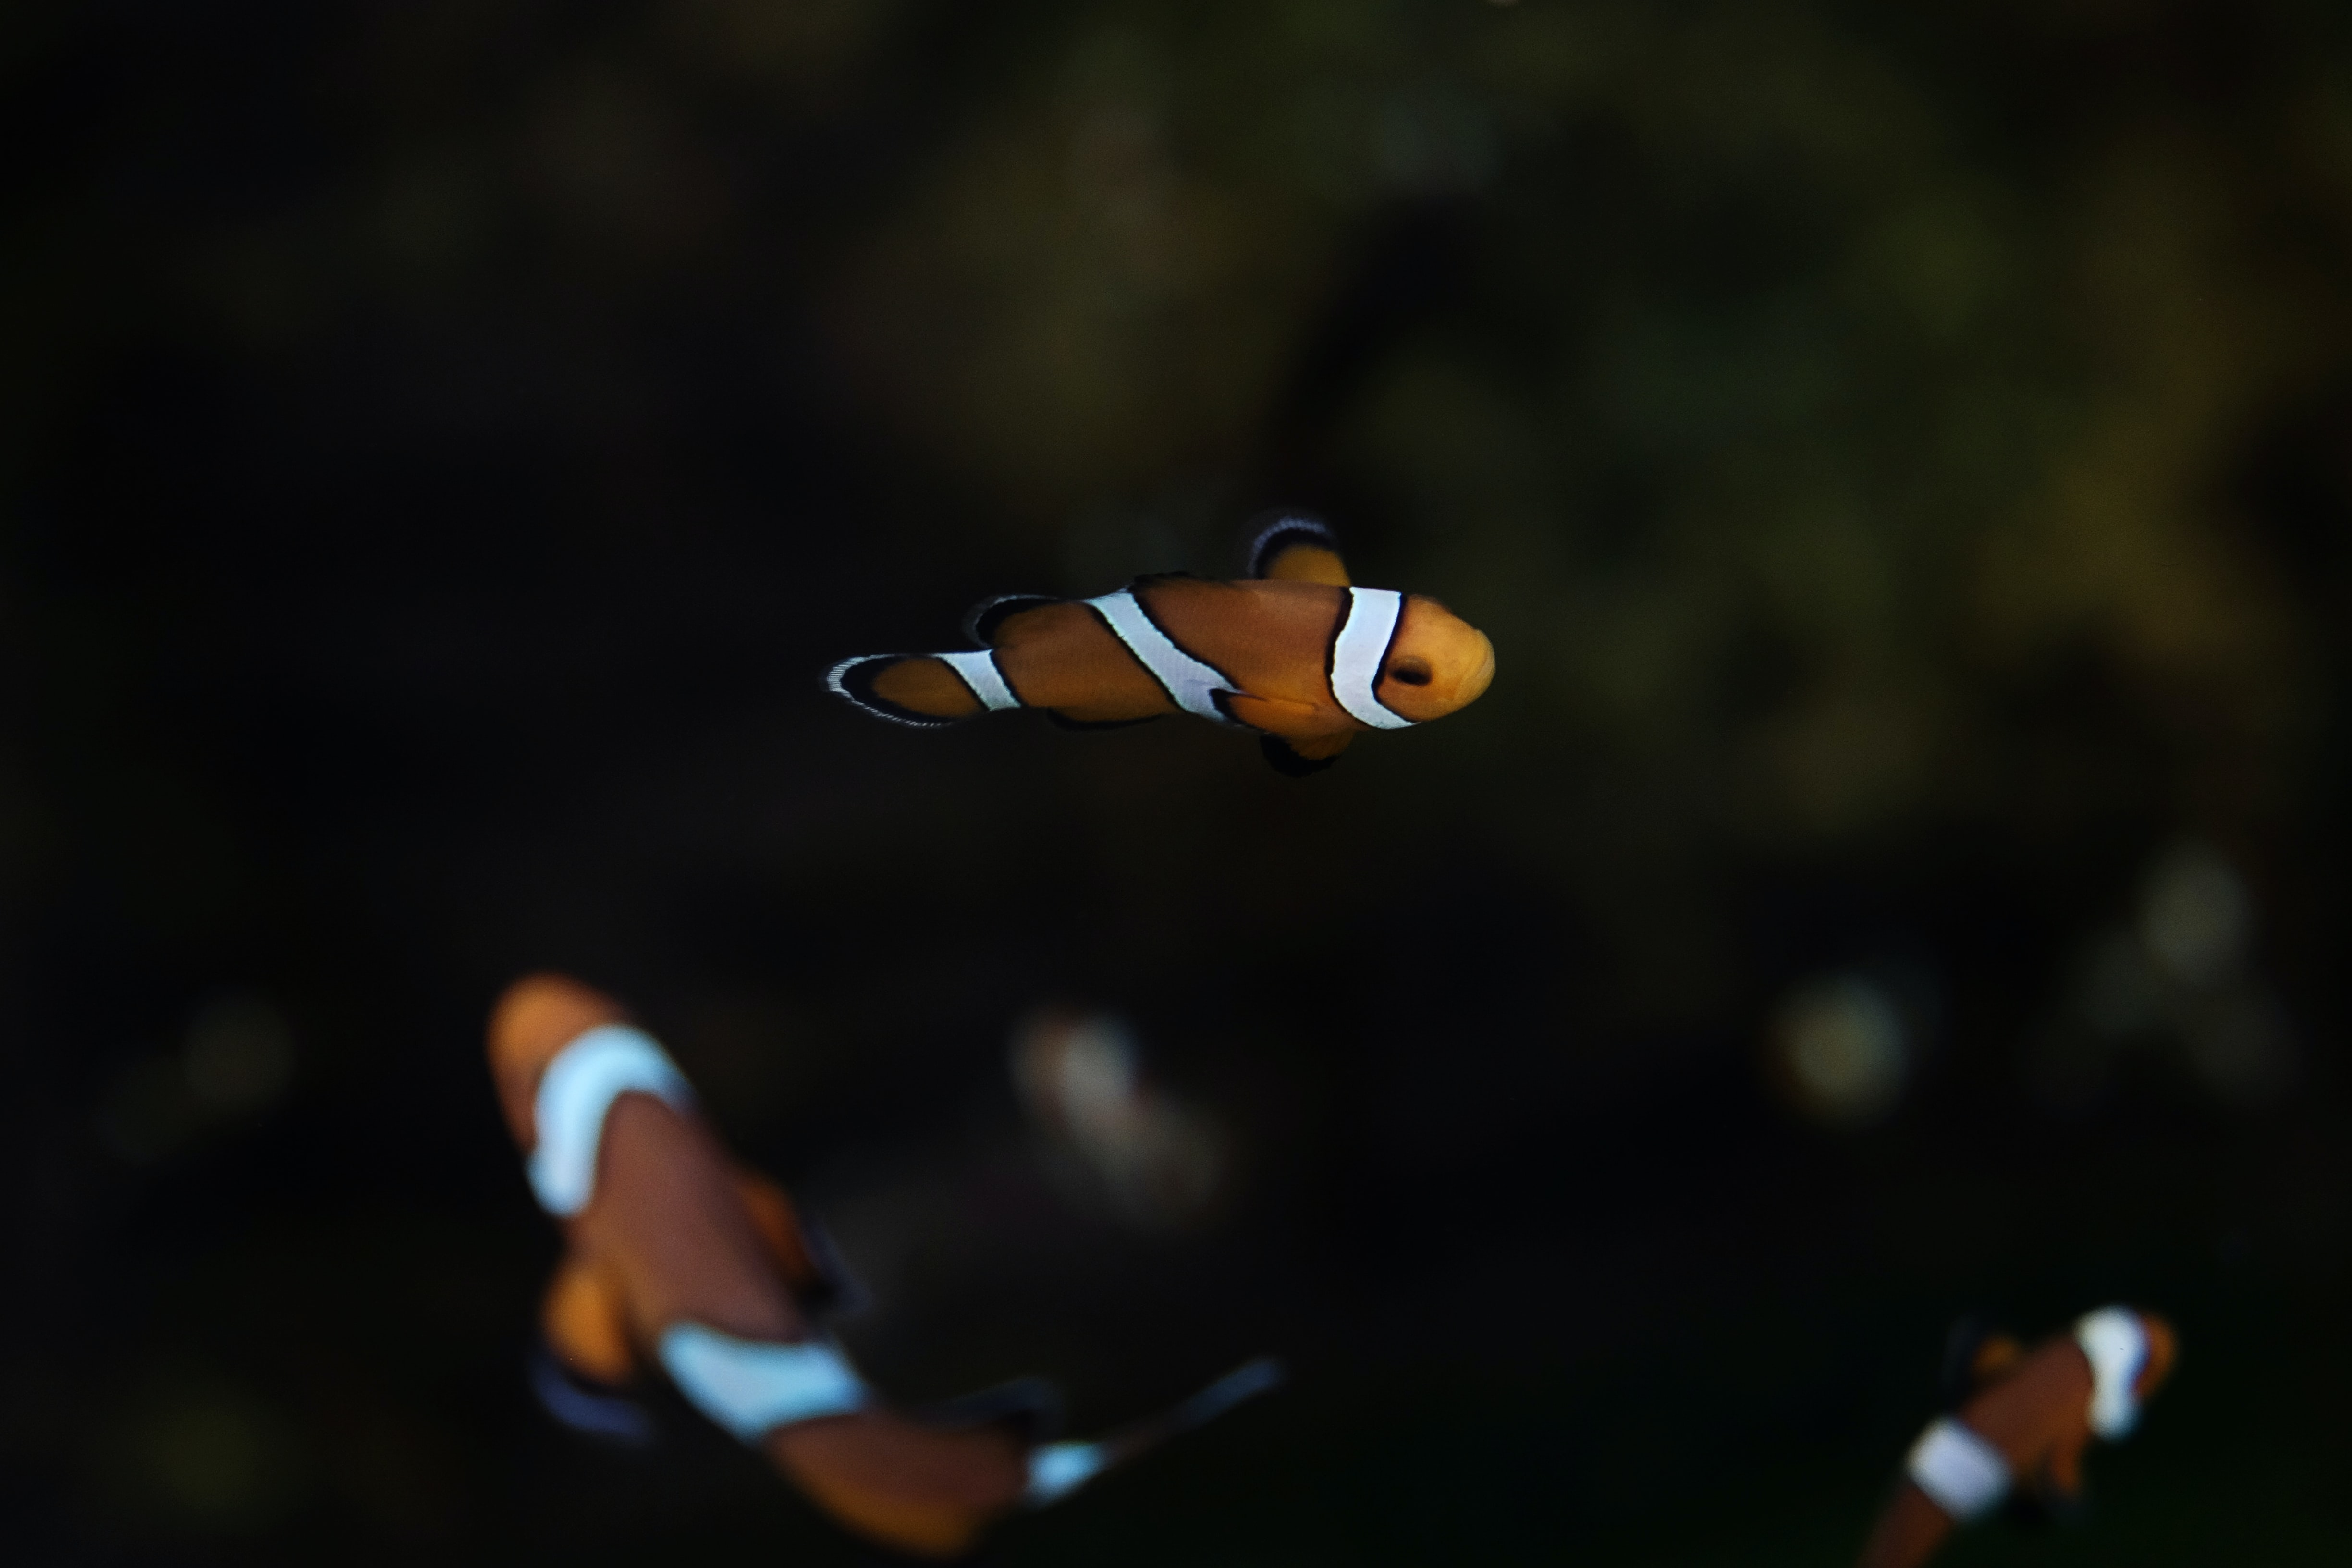 bokeh photography of fish